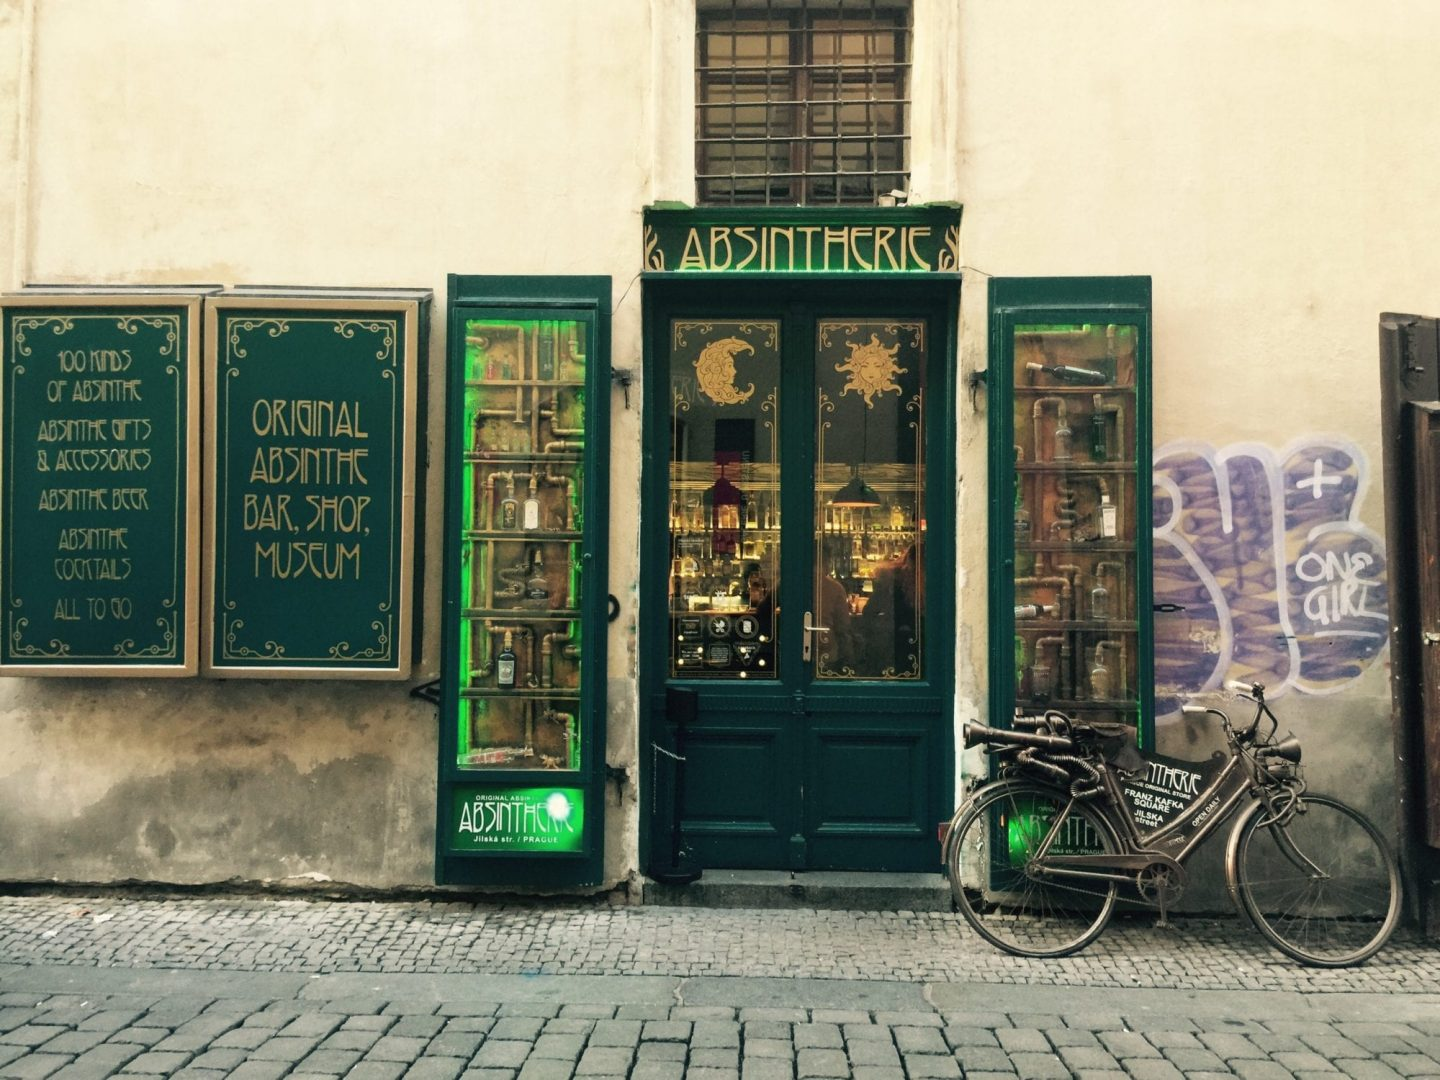 Front door of the famous czech bar Absintherie, famous for the absinthe-based drinks.